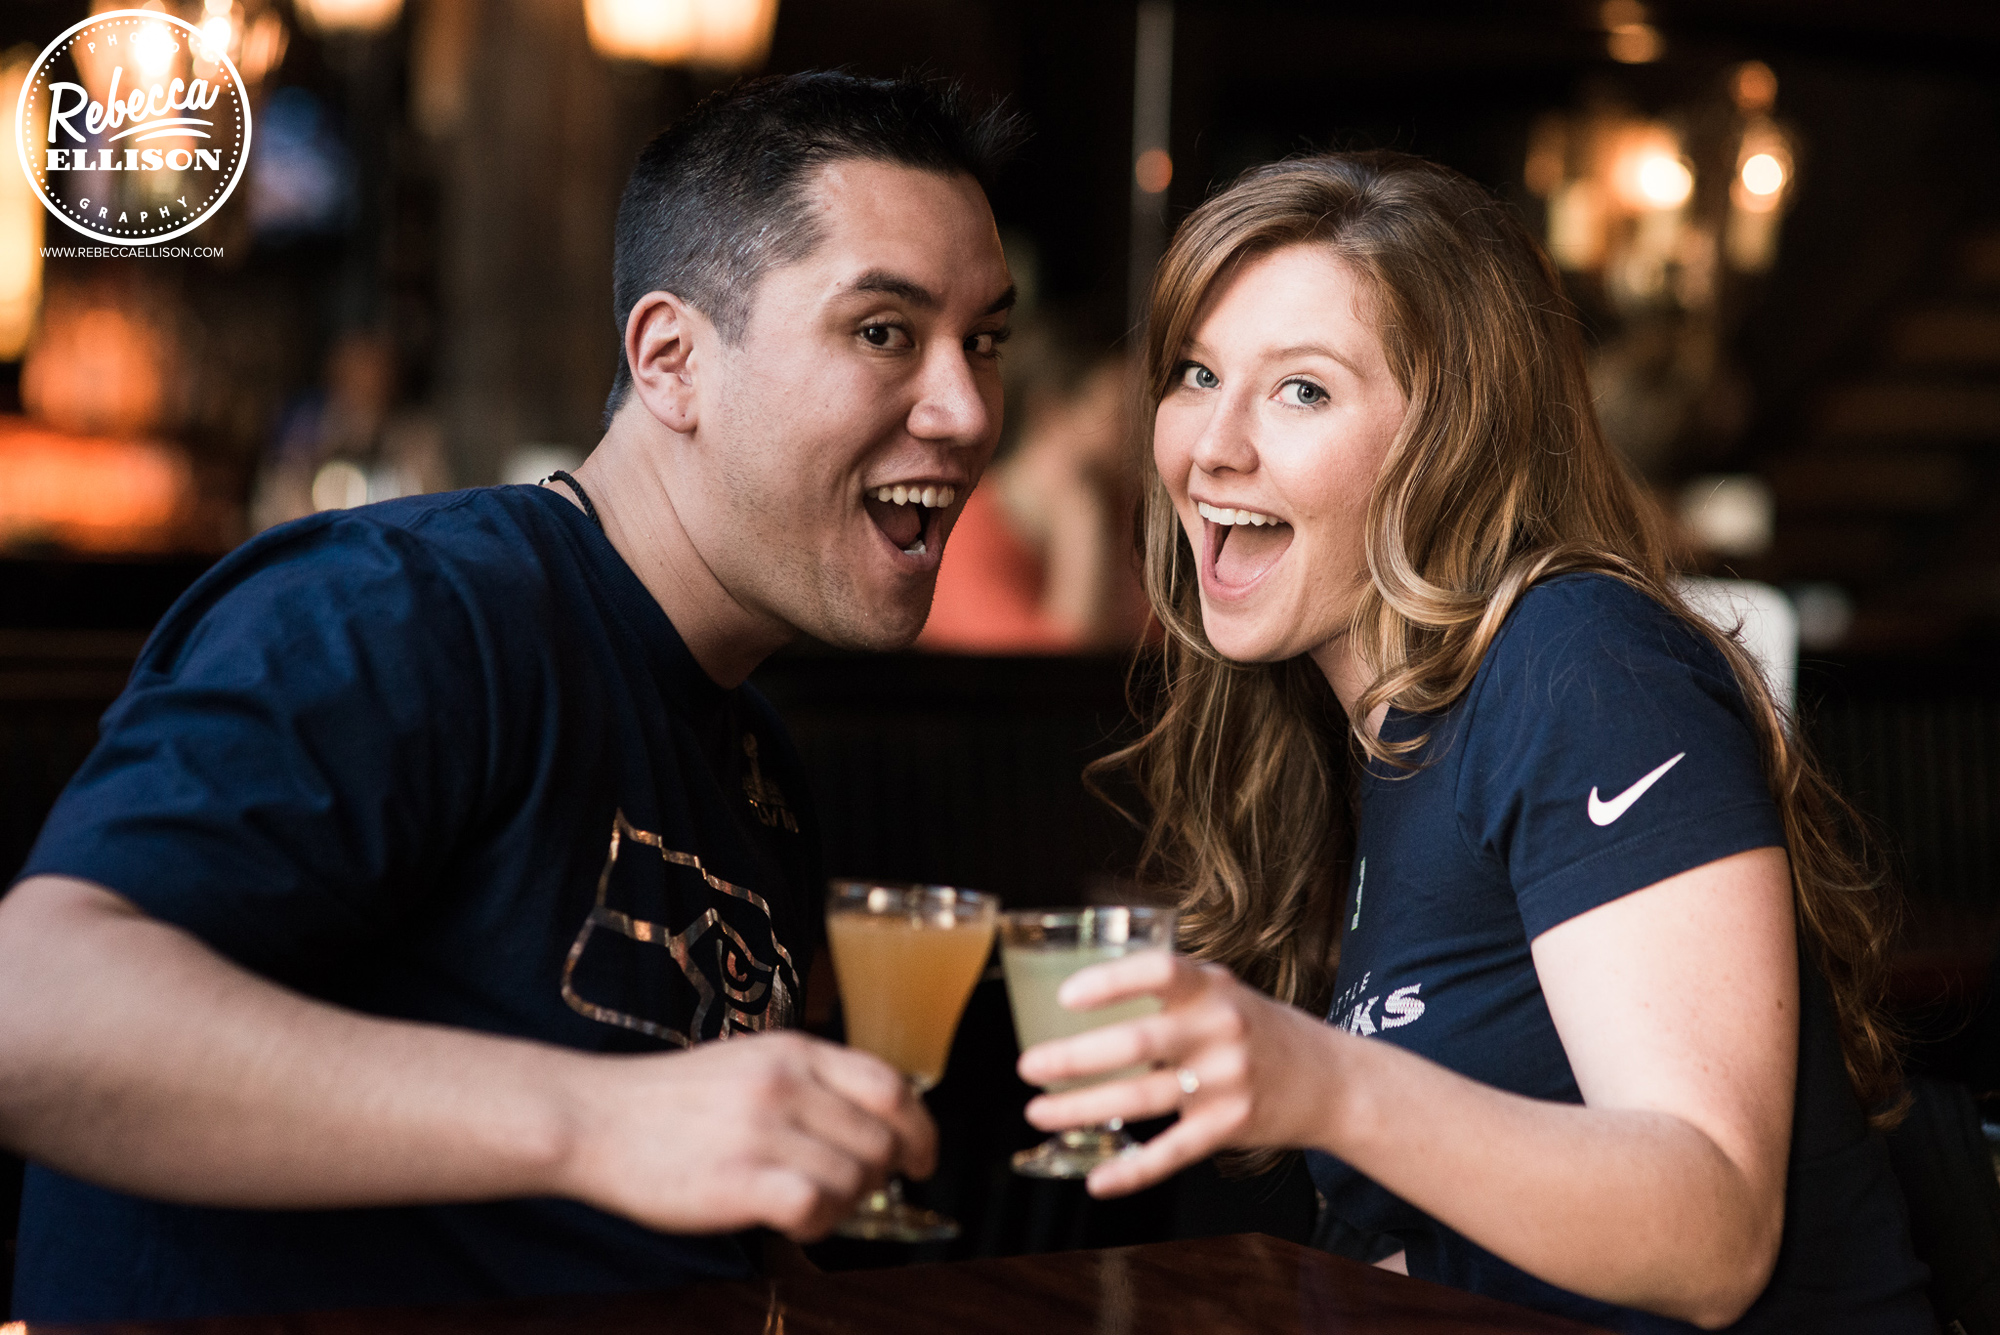 Engagement portraits featuring cocktails and Seahawks T-shirts photographed in downtown Ballard by Rebecca Ellison Photography